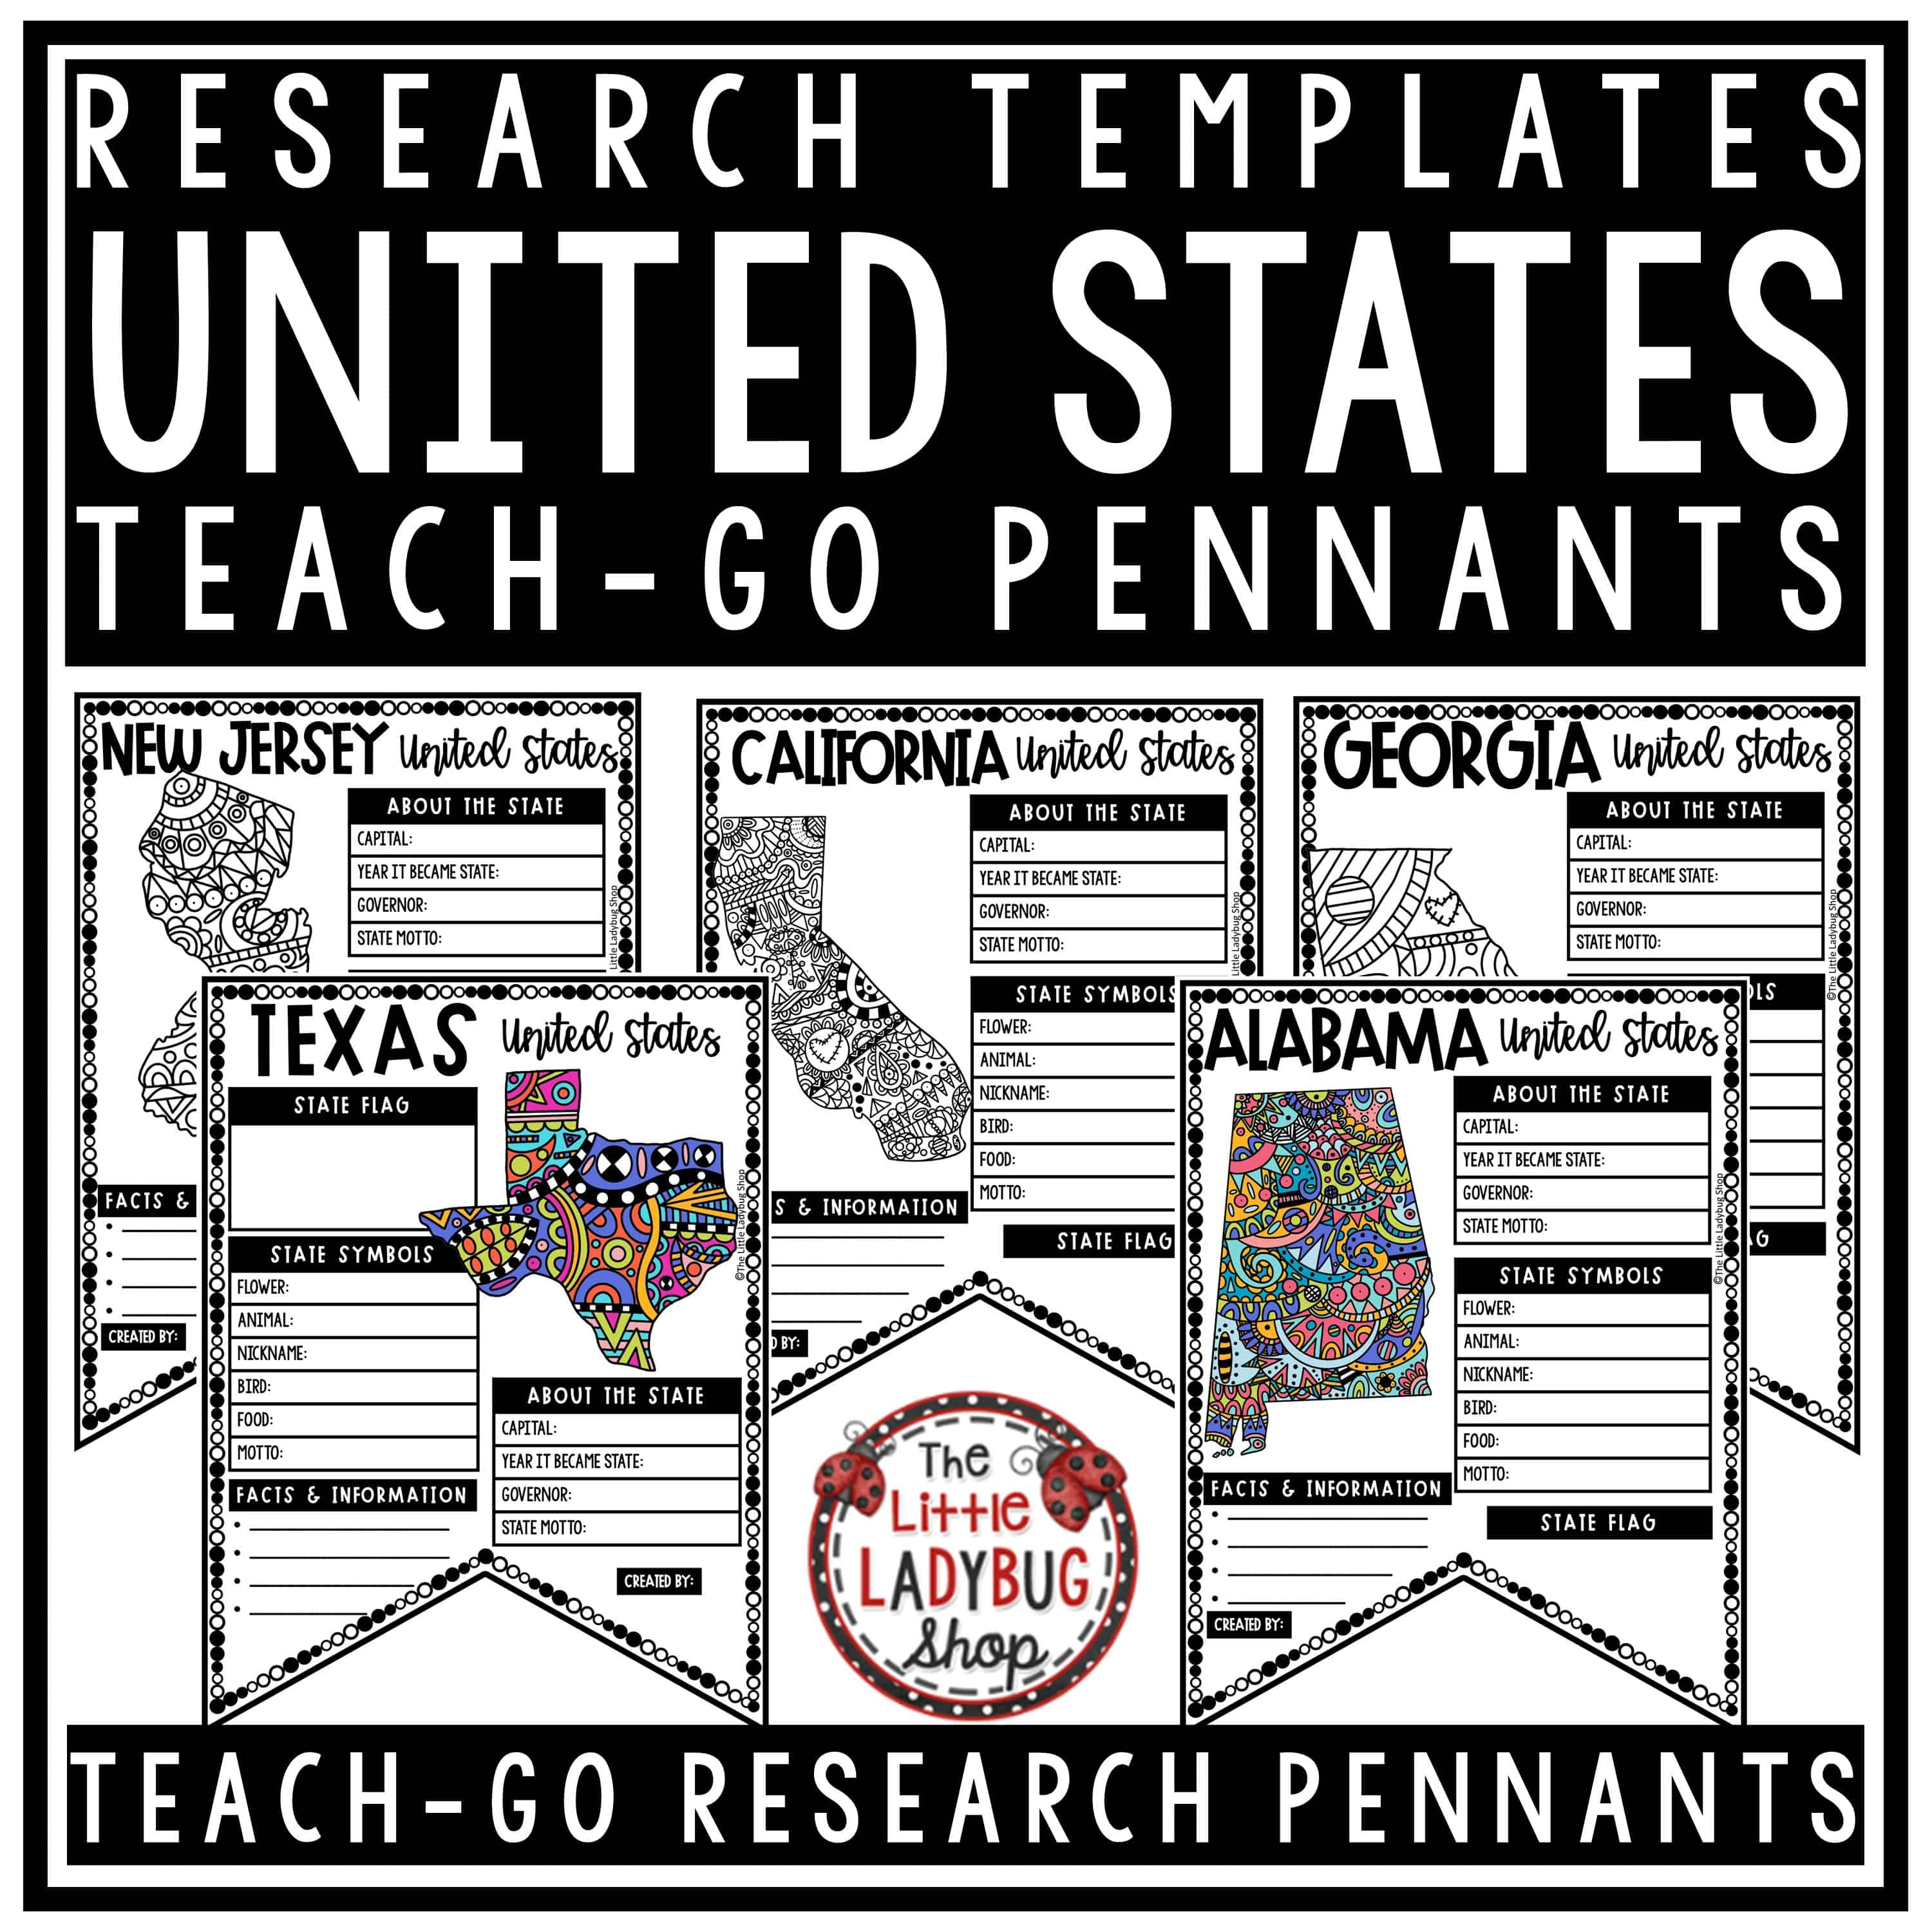 50 us states activities united states research templates- teach-go pennants u00ae